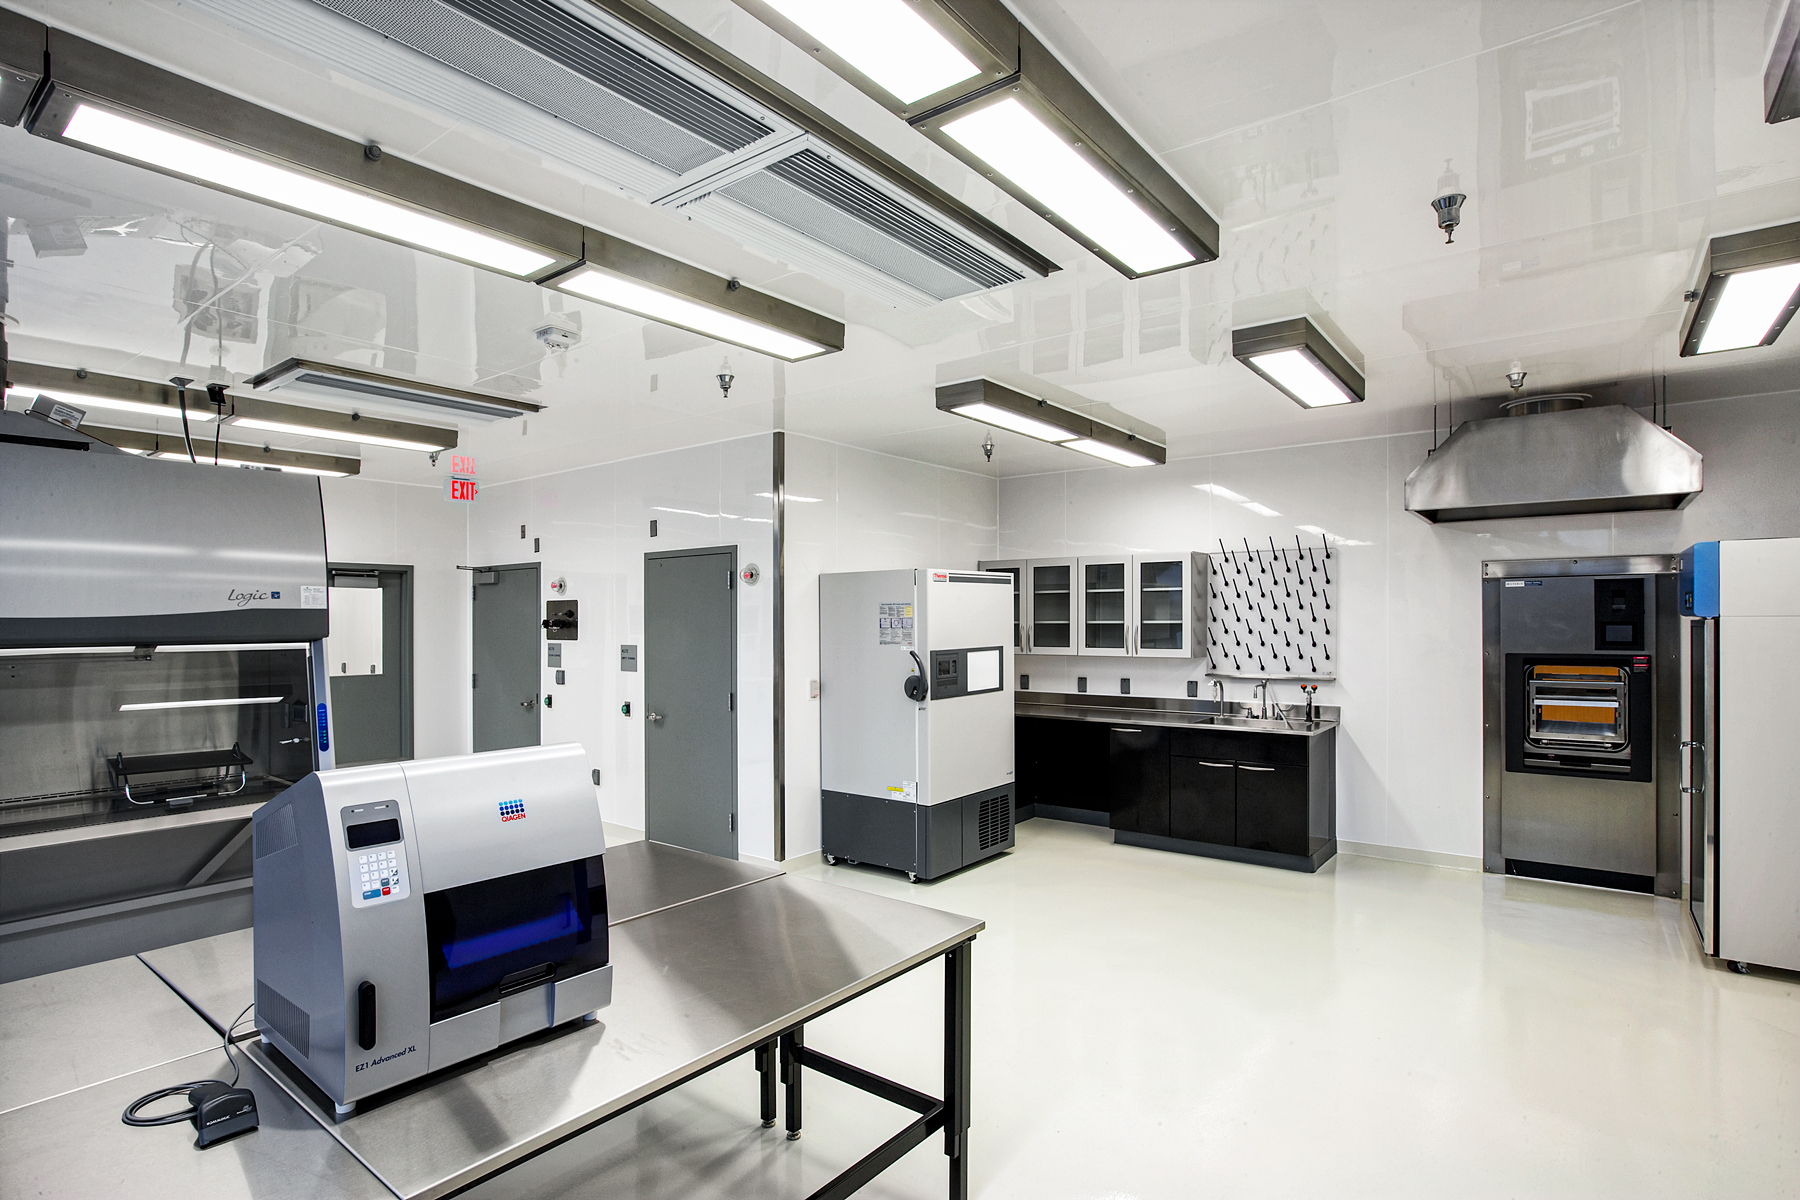 Arcoplast forensics lab using GFRP Panelling lead lined system